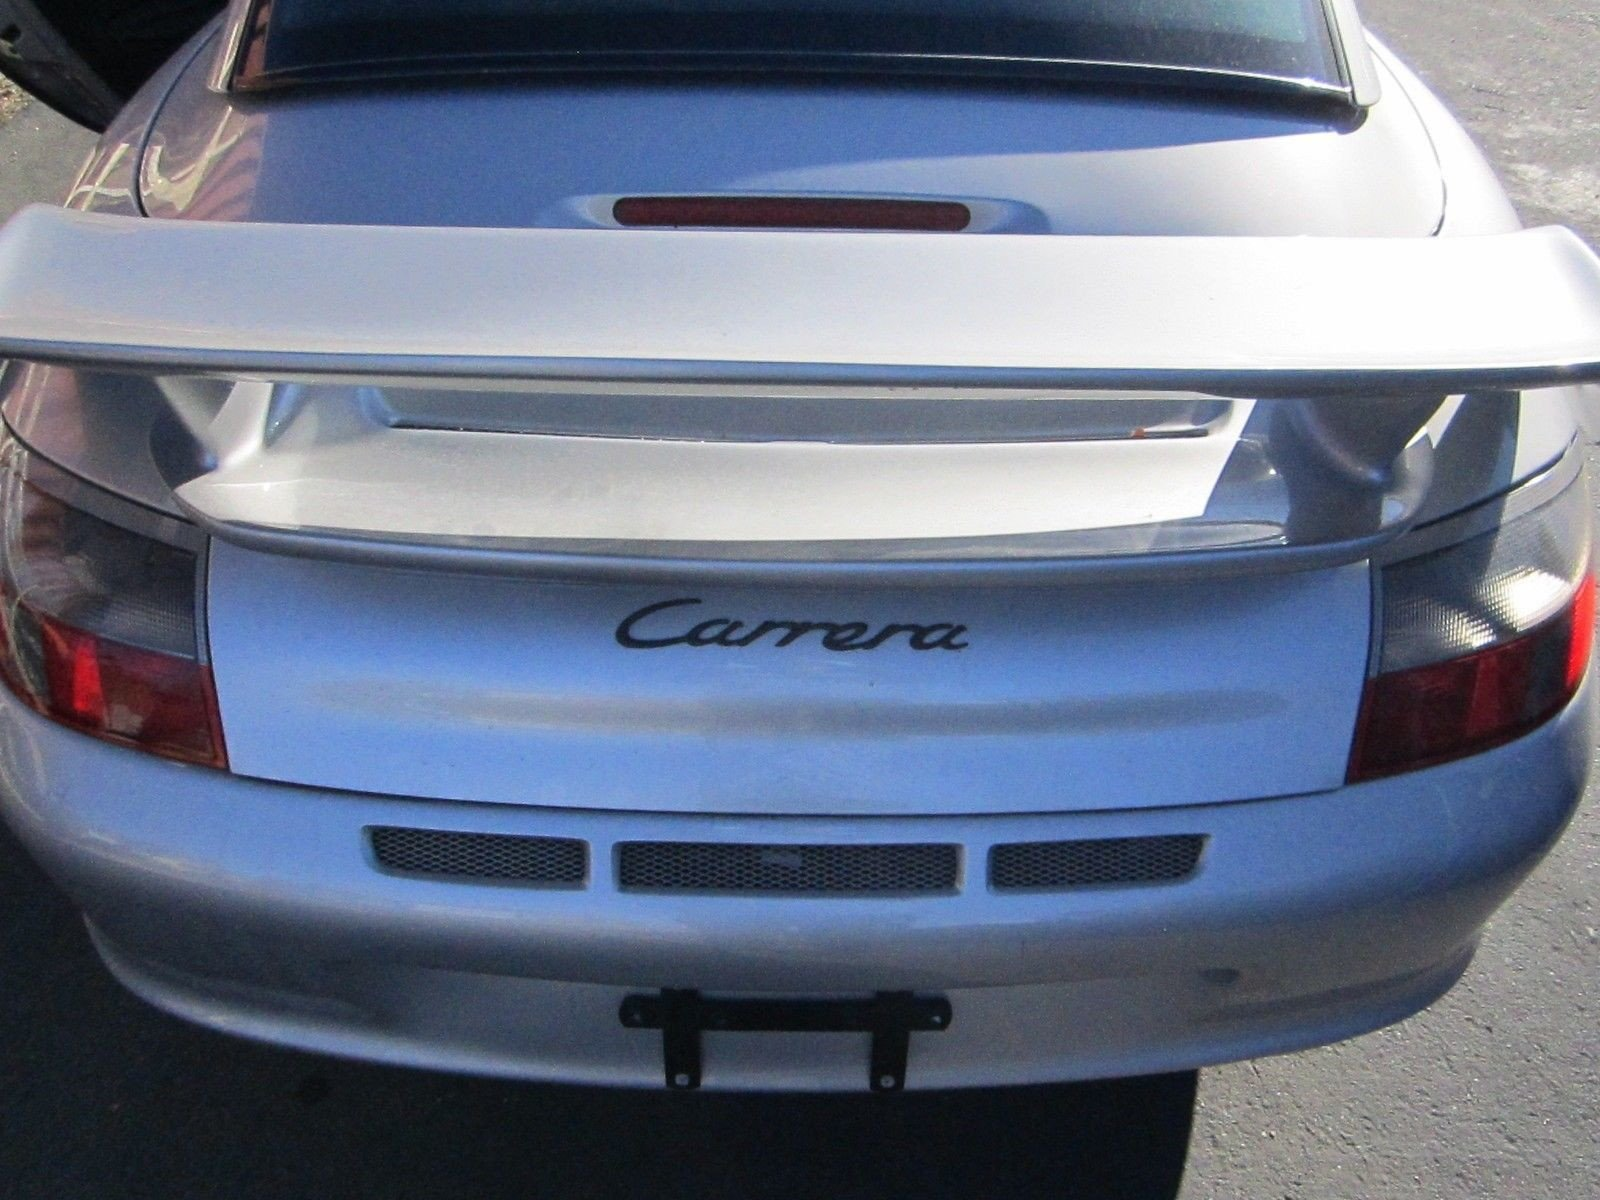 99 RWD Porsche 911 Carrera Convertible 996 Parting Out car parts part 71,735